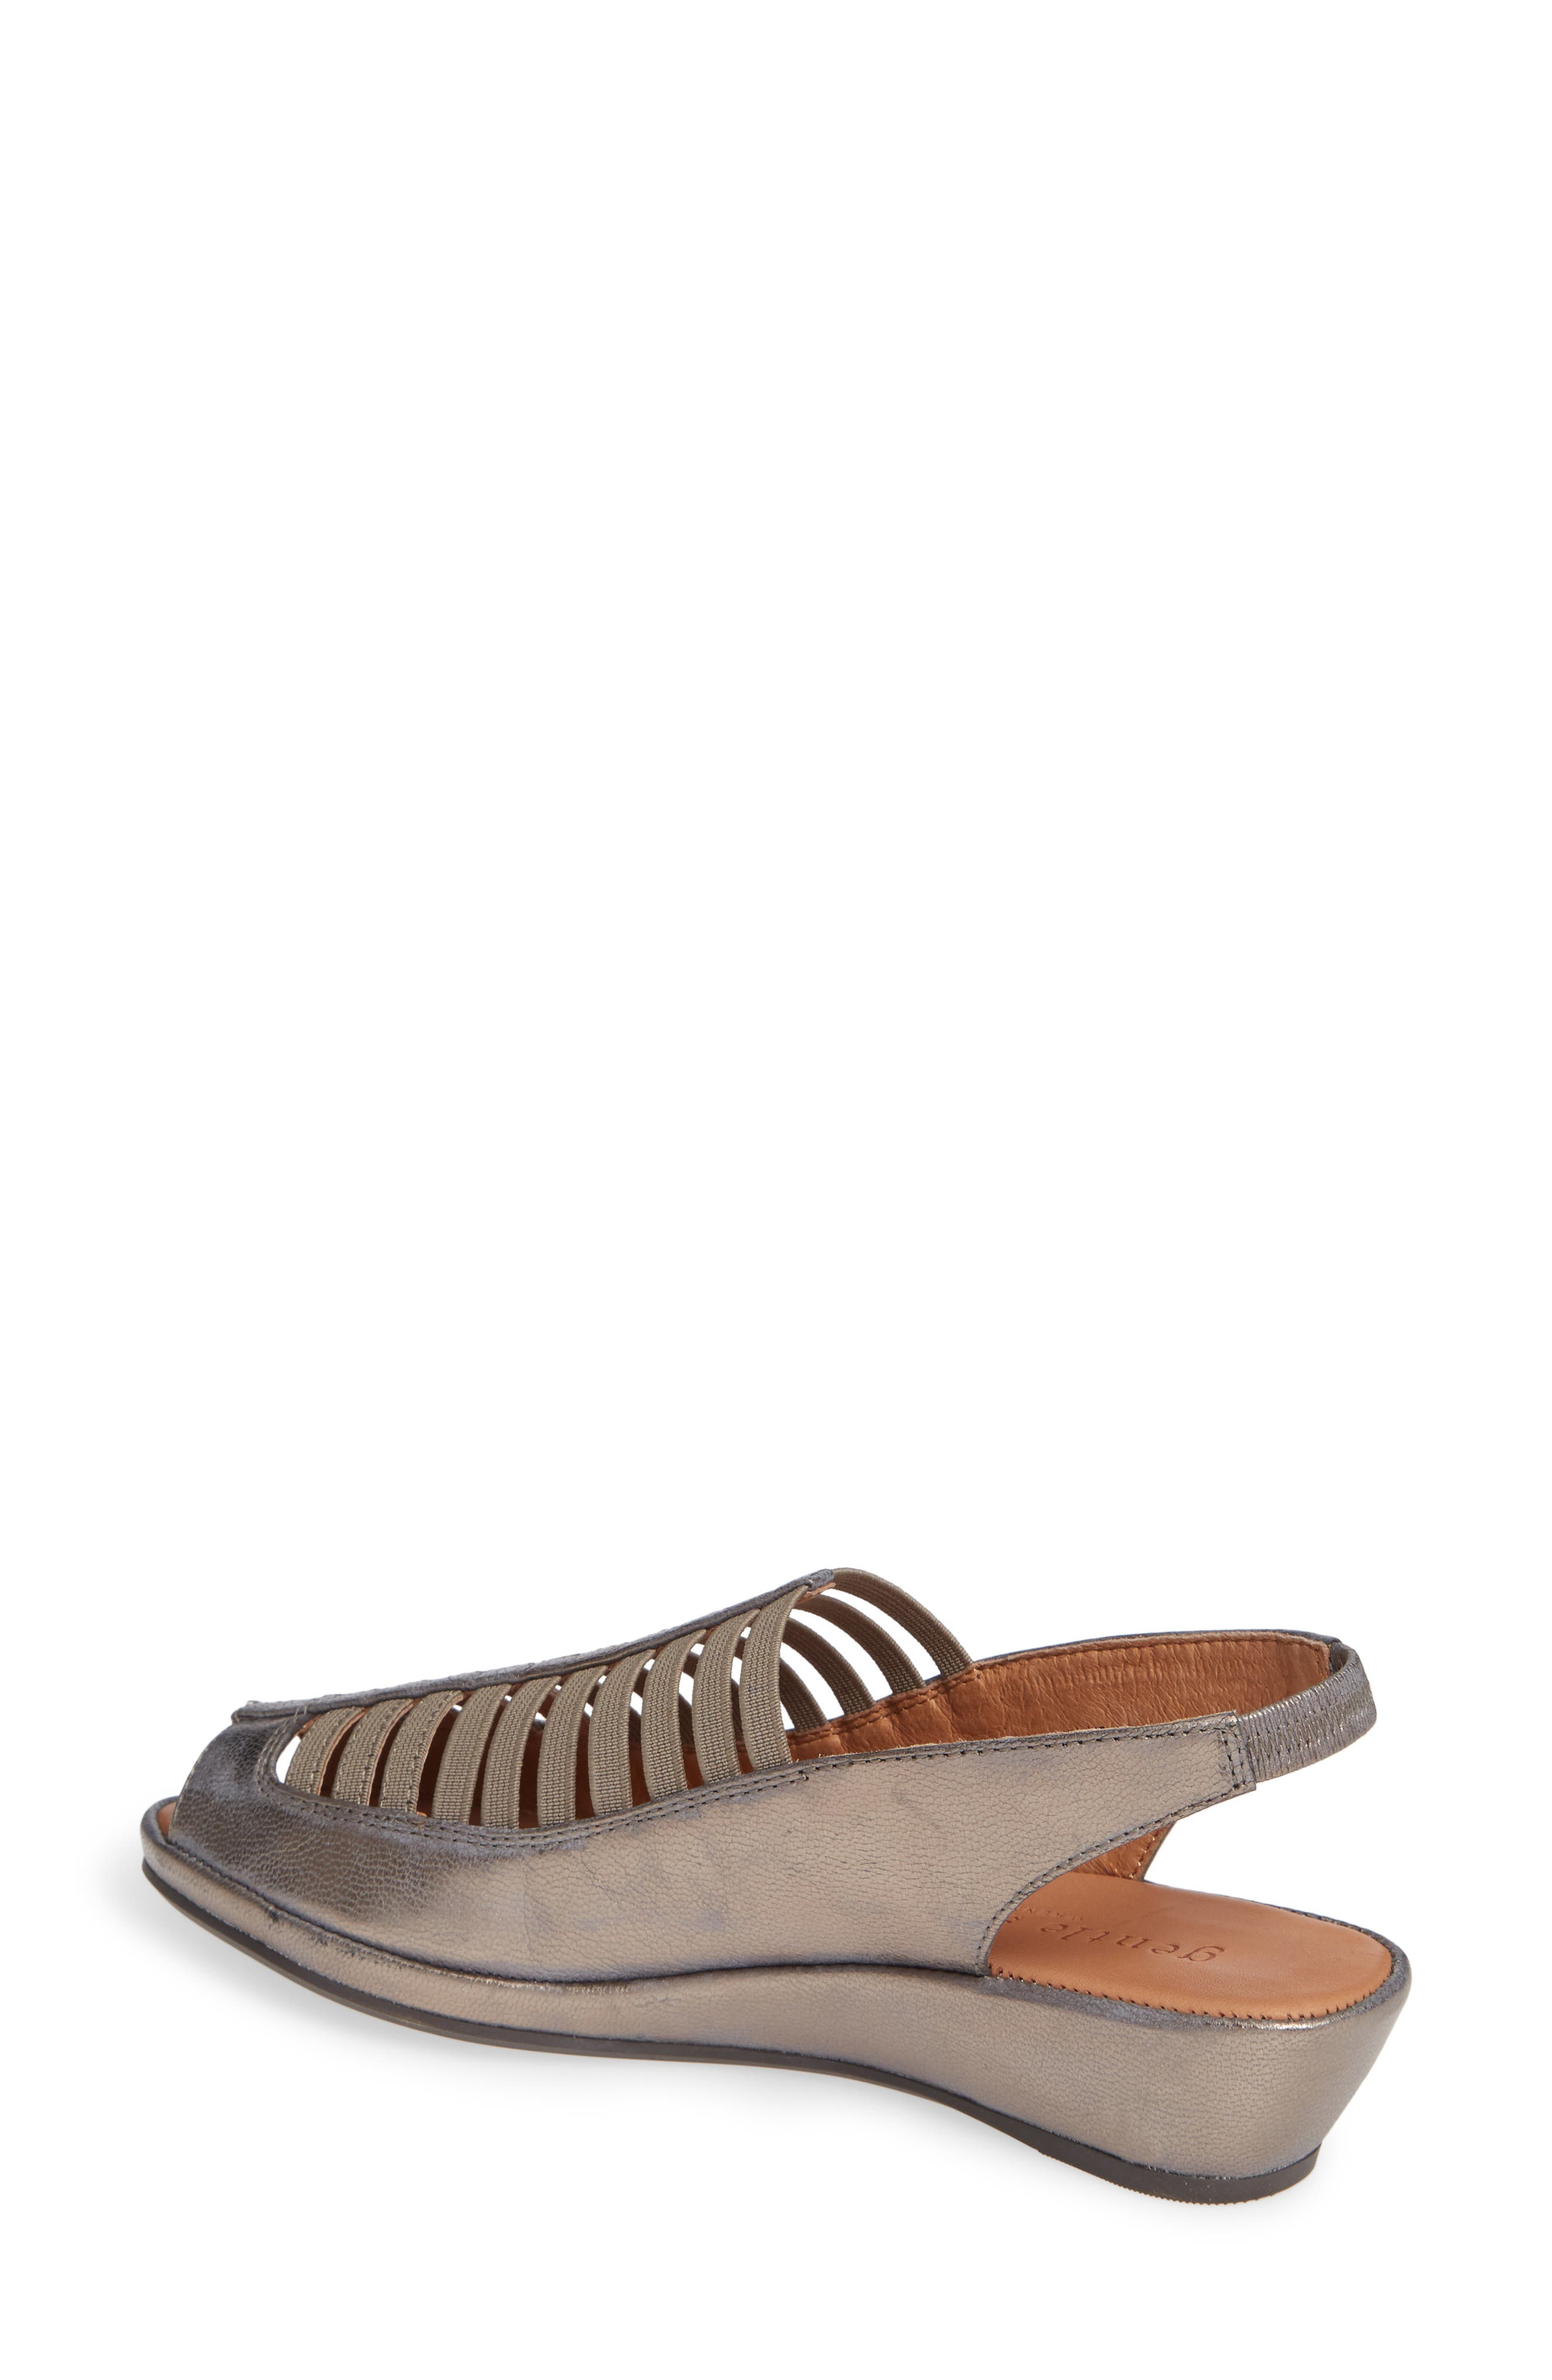 by Kenneth Cole 'Lee' Sandal,                             Alternate thumbnail 8, color,